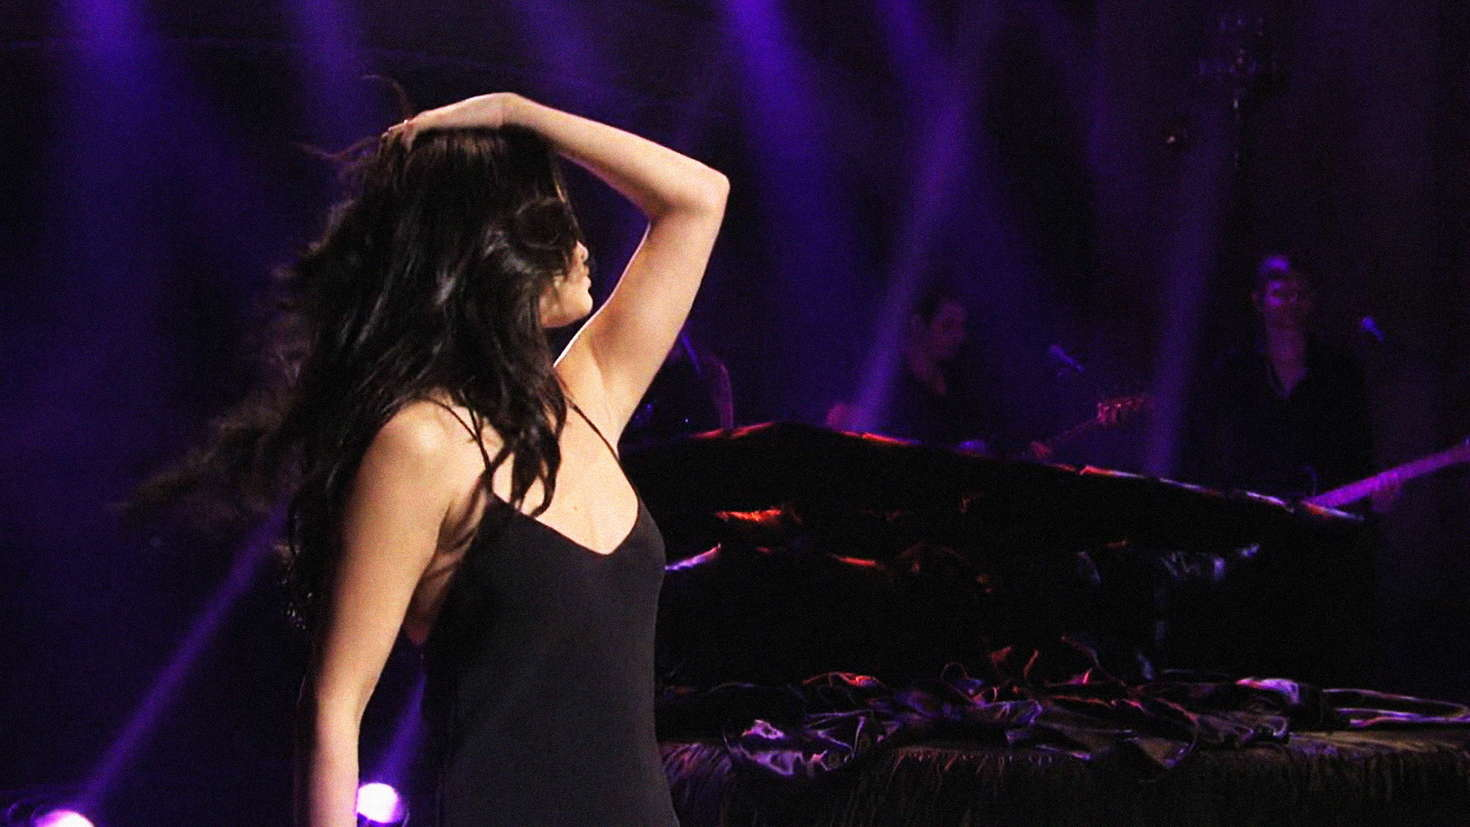 Selena gomez performance on saturday night live in ny for Where do models live in nyc